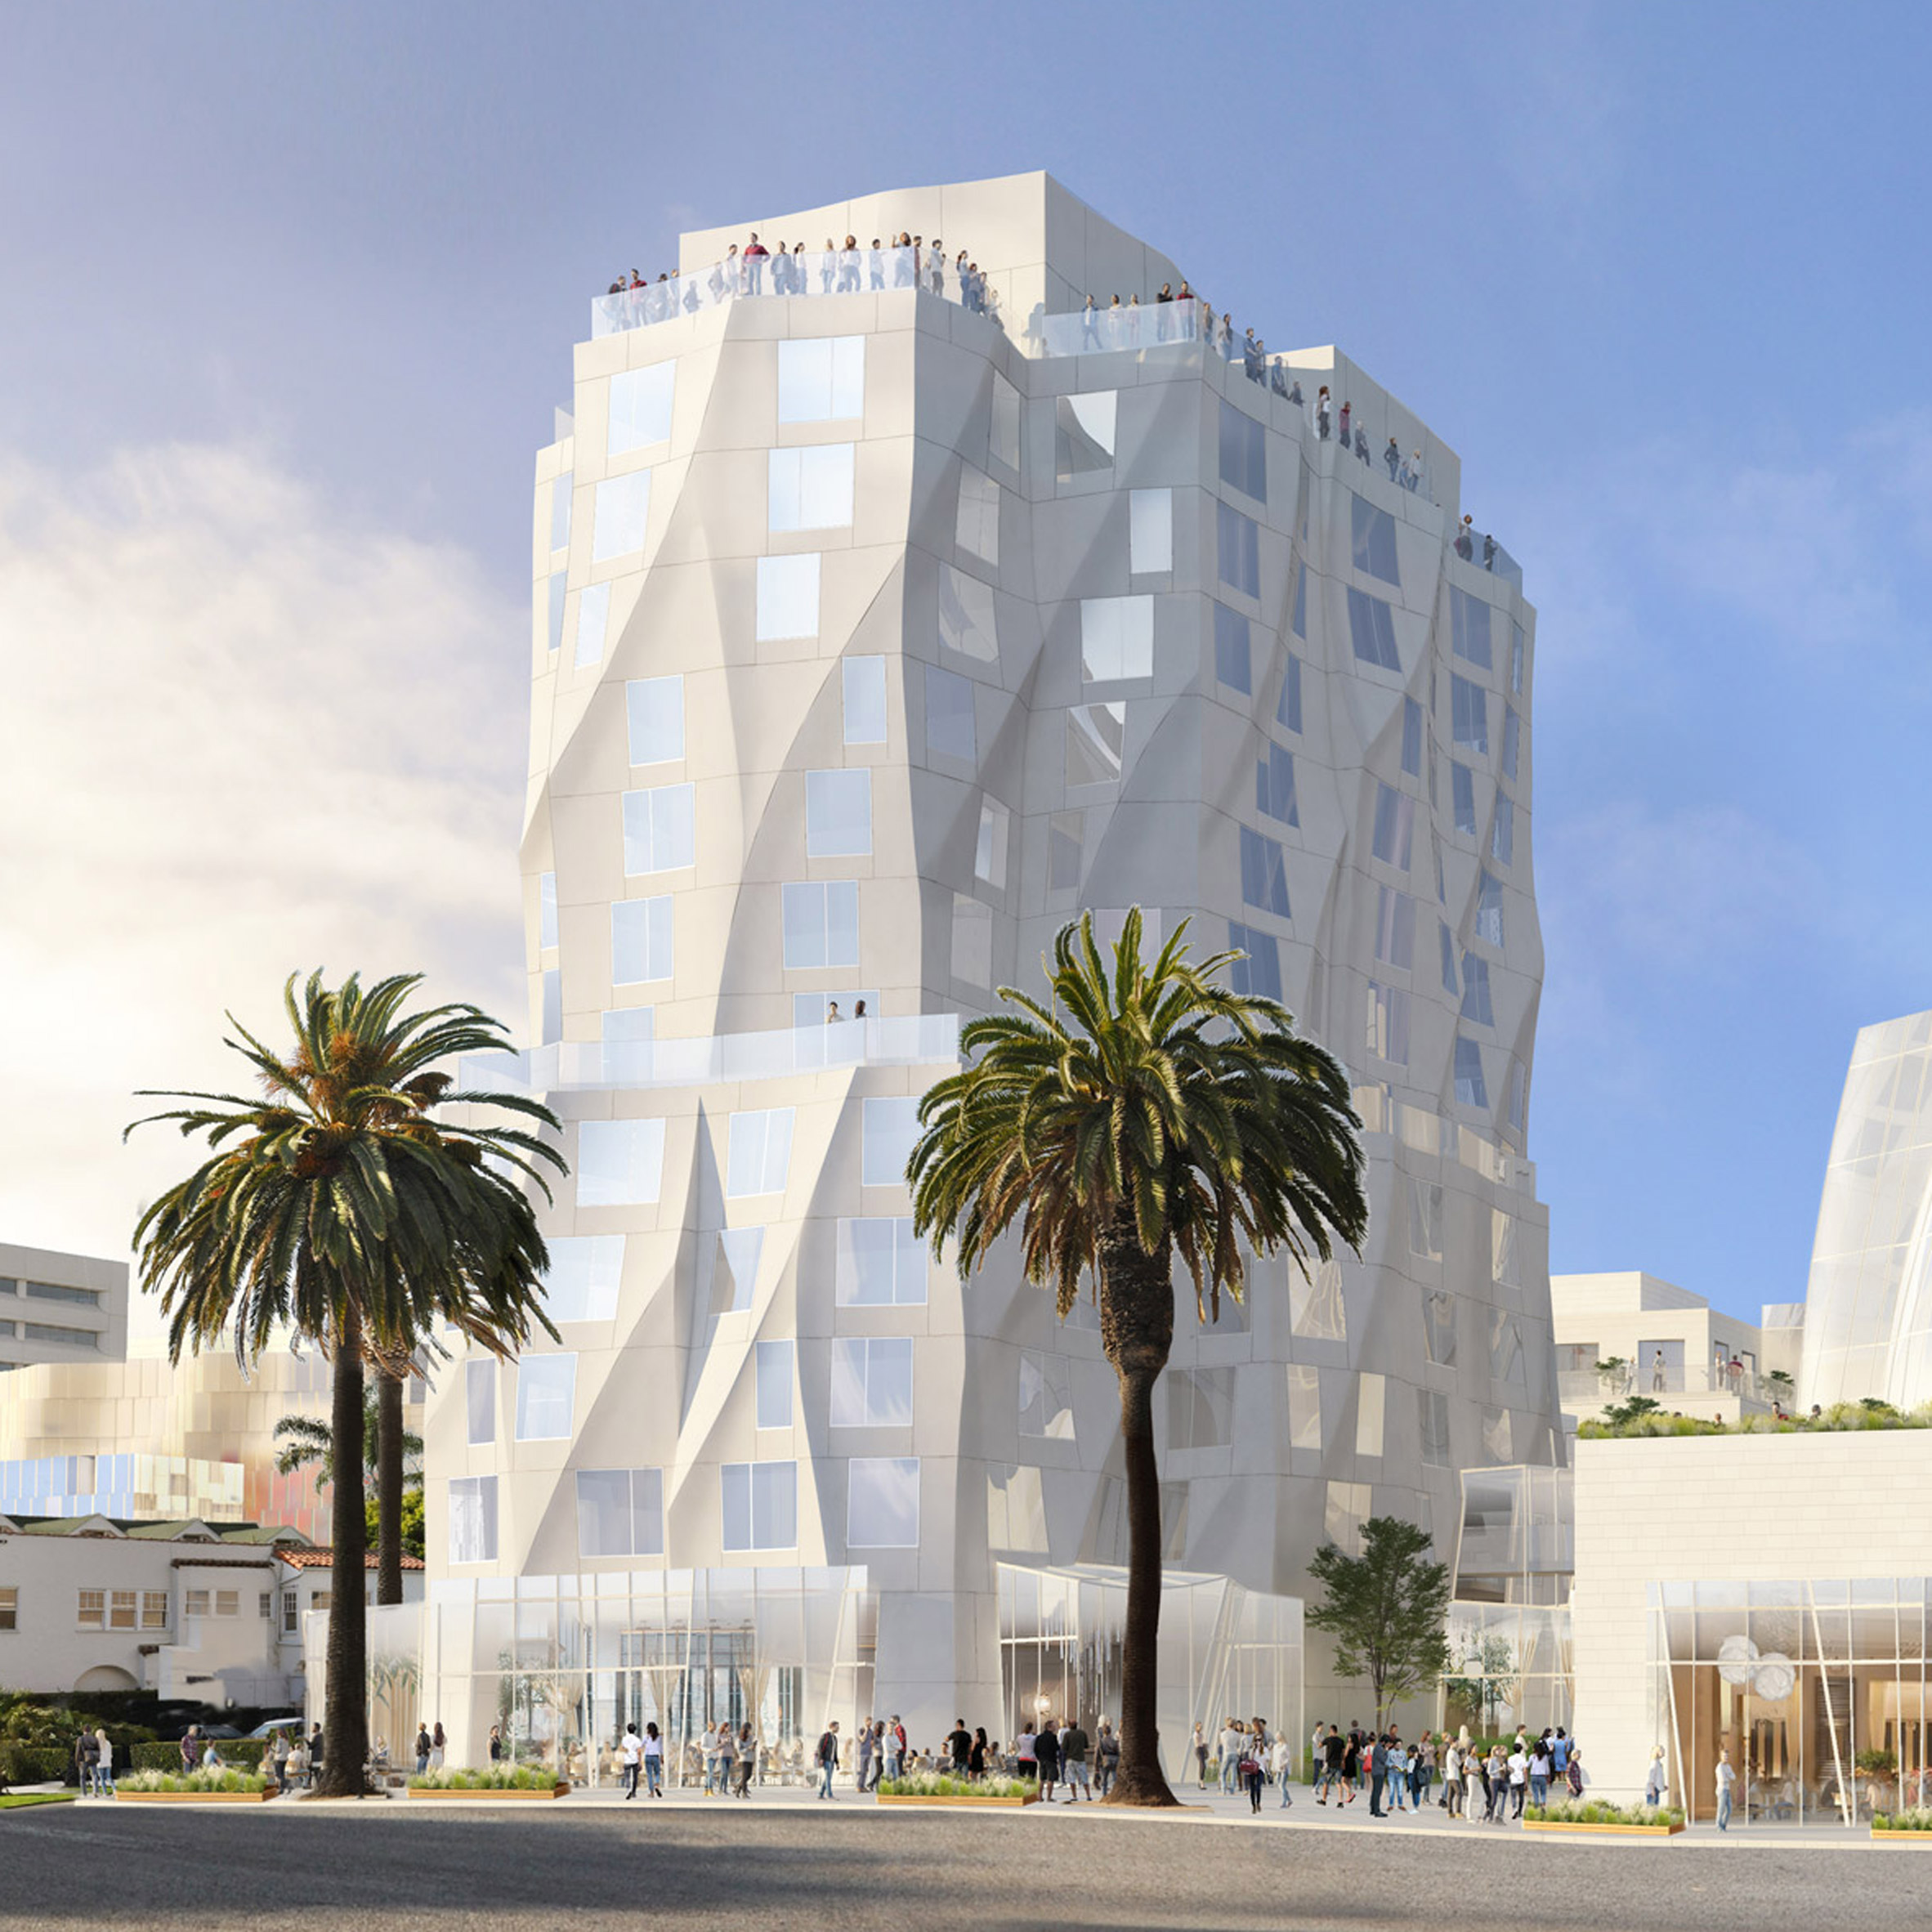 Frank Gehry adds more public spaces to Santa Monica